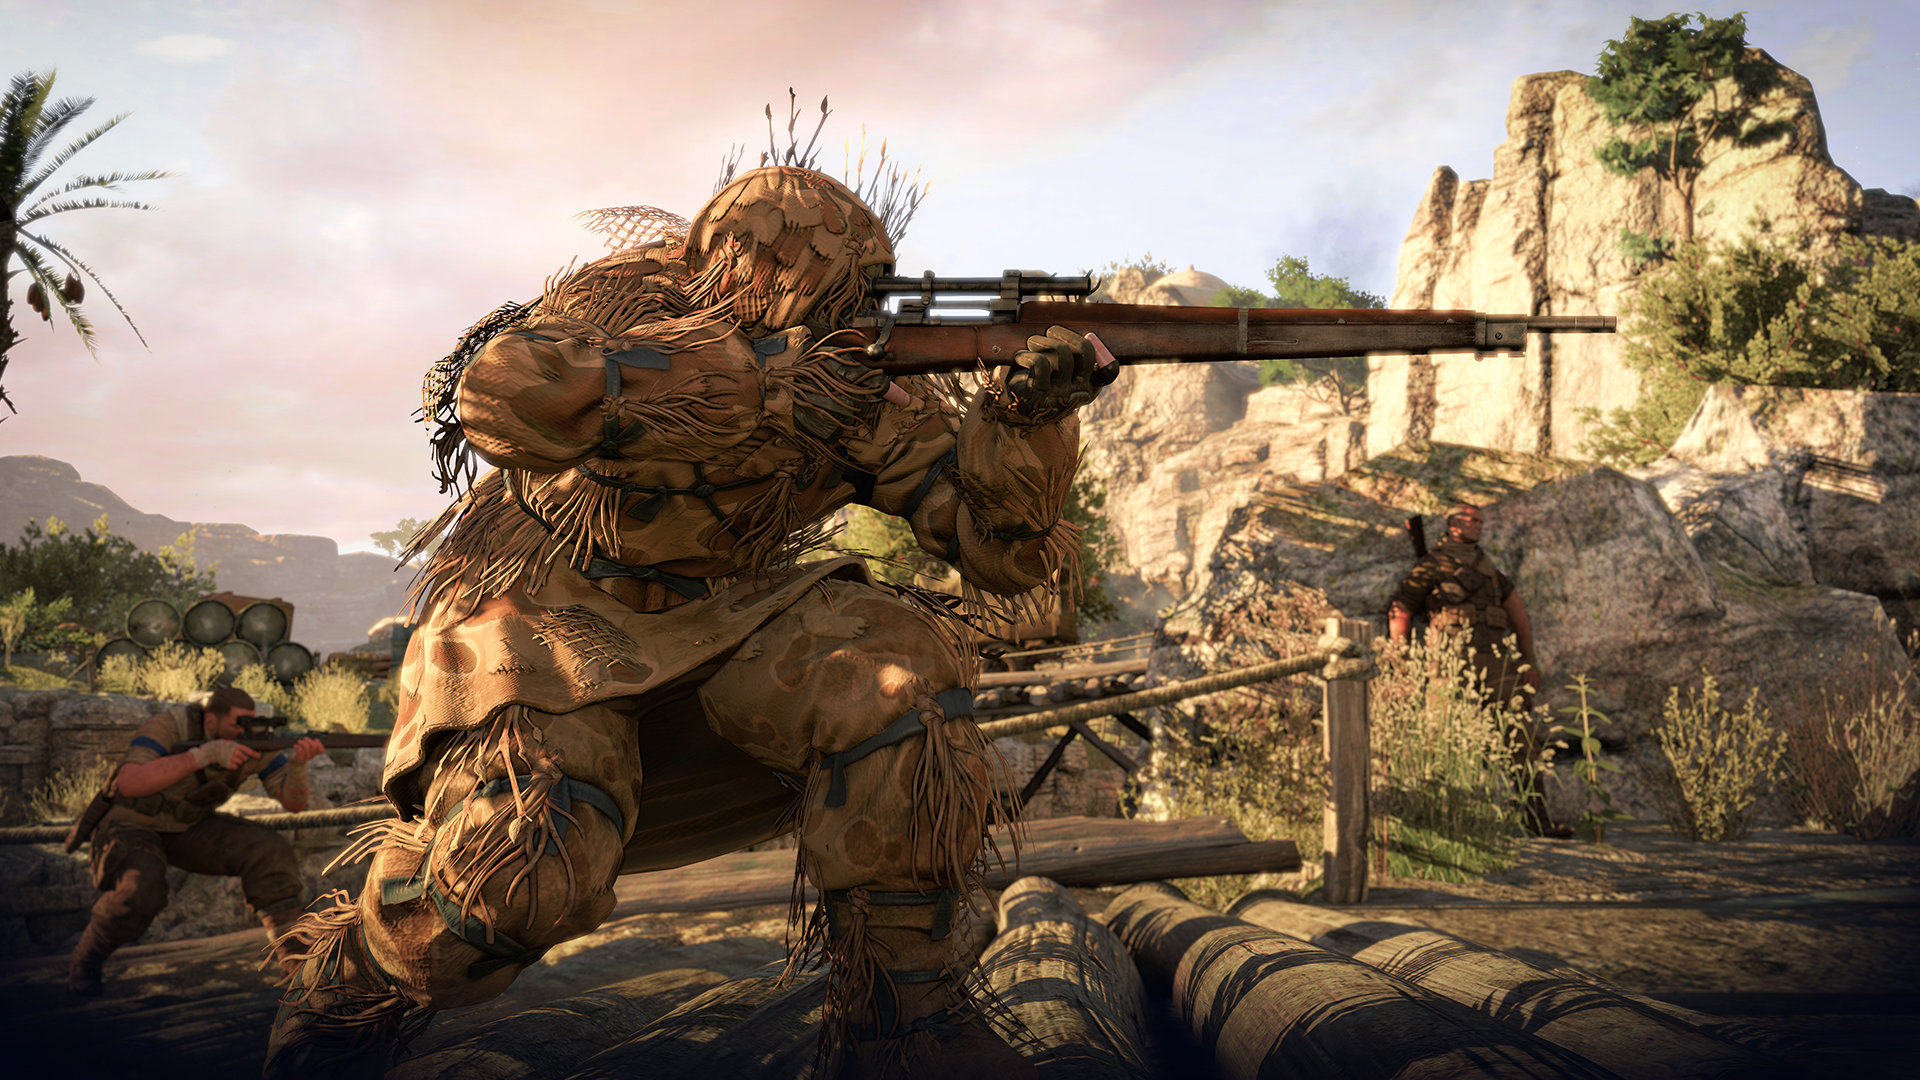 sniper-elite-3-screenshot-02-ps4-us-12ju